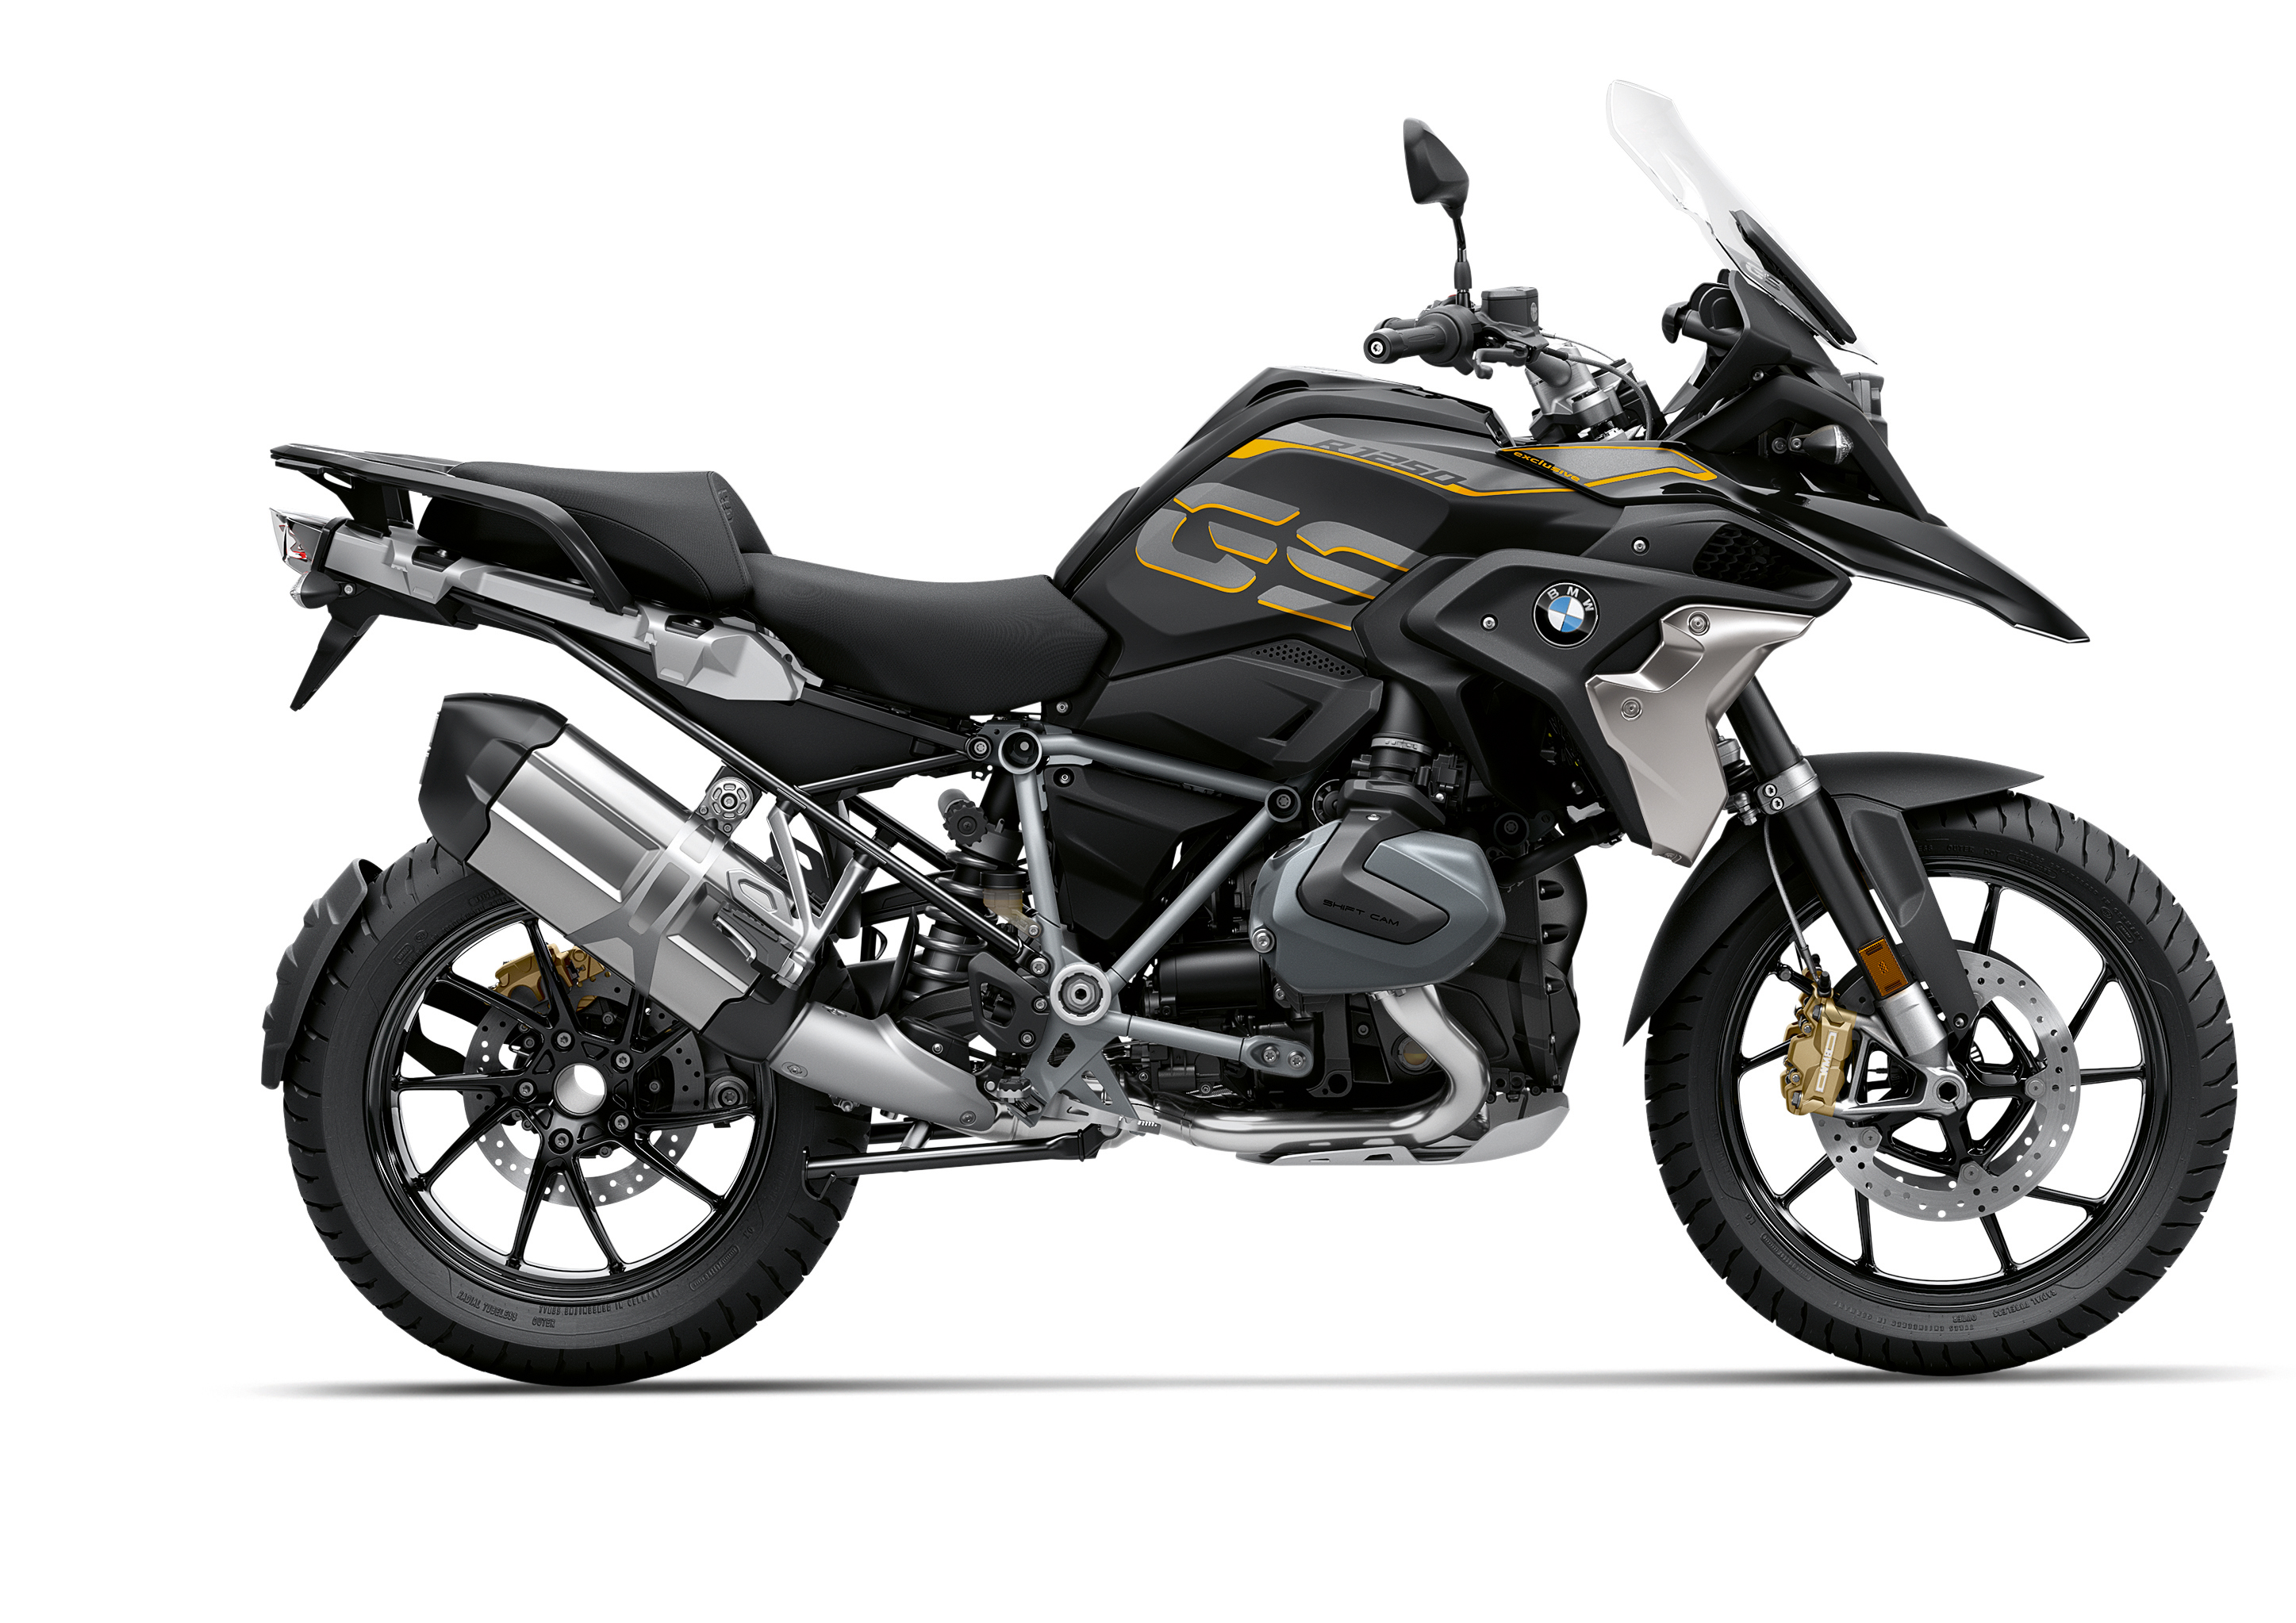 bmw r 1250 gs 2019 adventure bmw moottoripy r t euro motor center. Black Bedroom Furniture Sets. Home Design Ideas